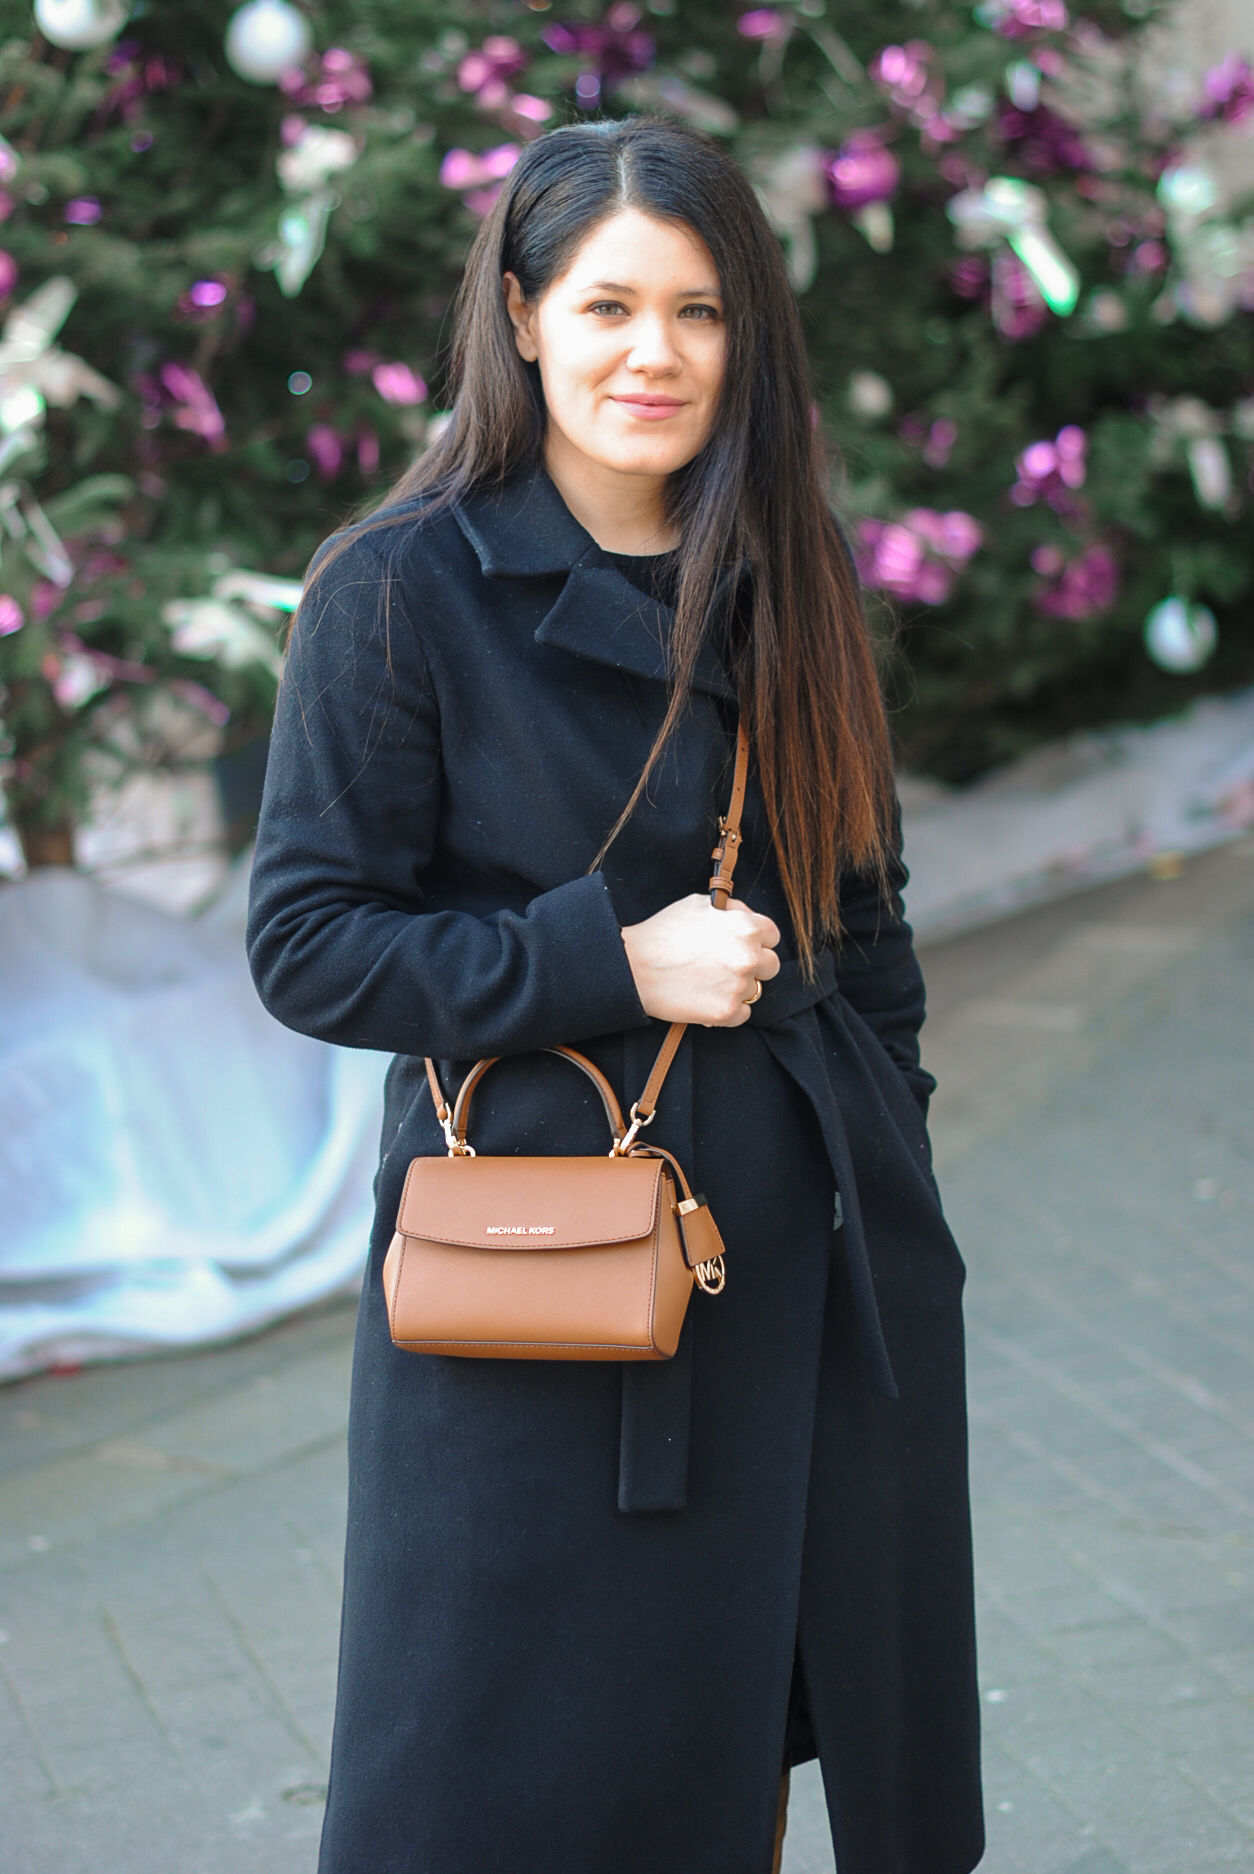 20210110-OUTFIT-BOLSO-MICHAEL KORS-07